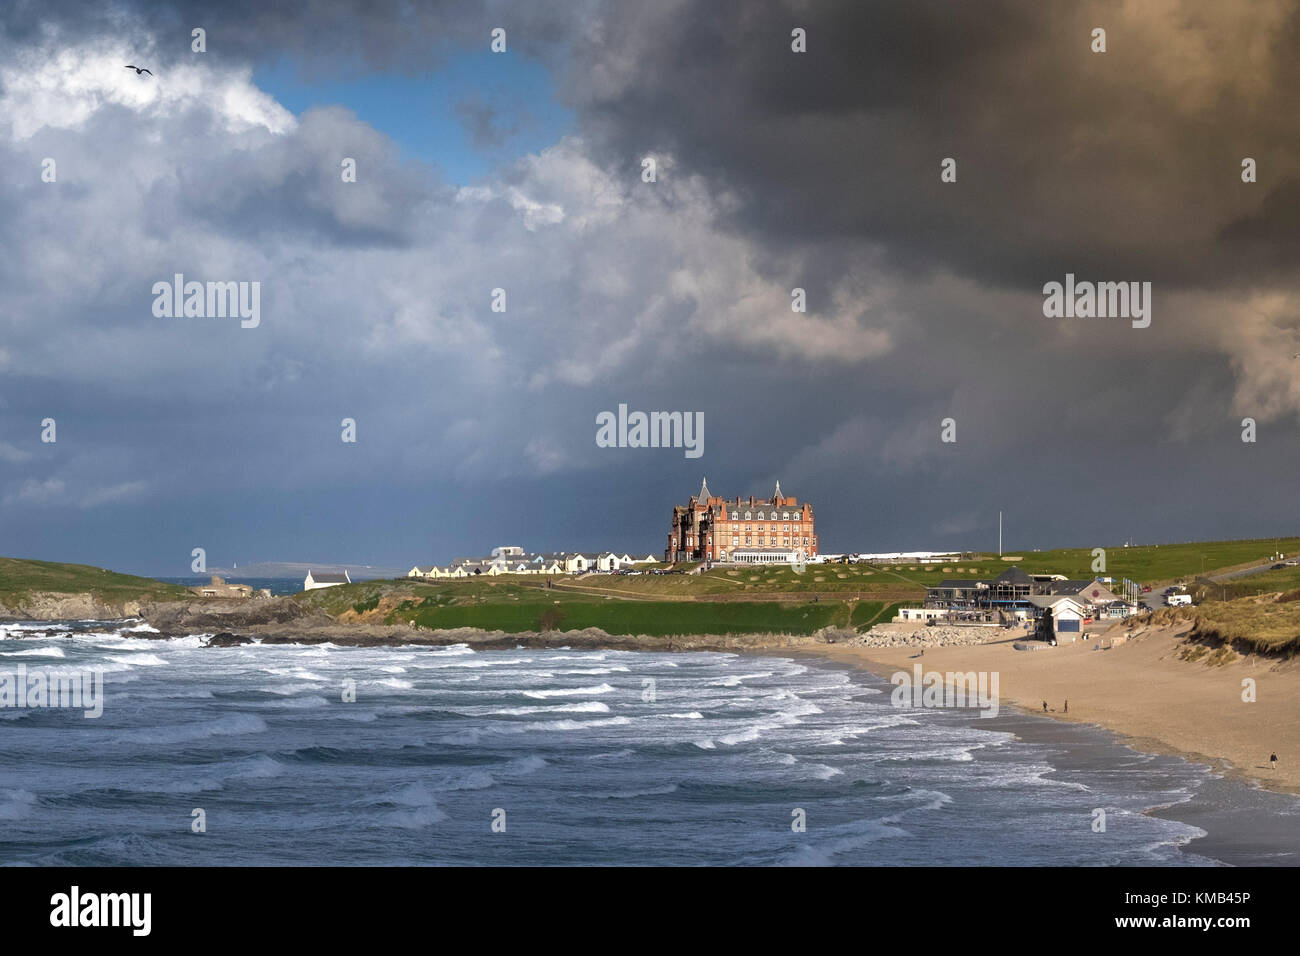 UK weather - stormy weather approaching Newquay on the North Cornwall coast. - Stock Image